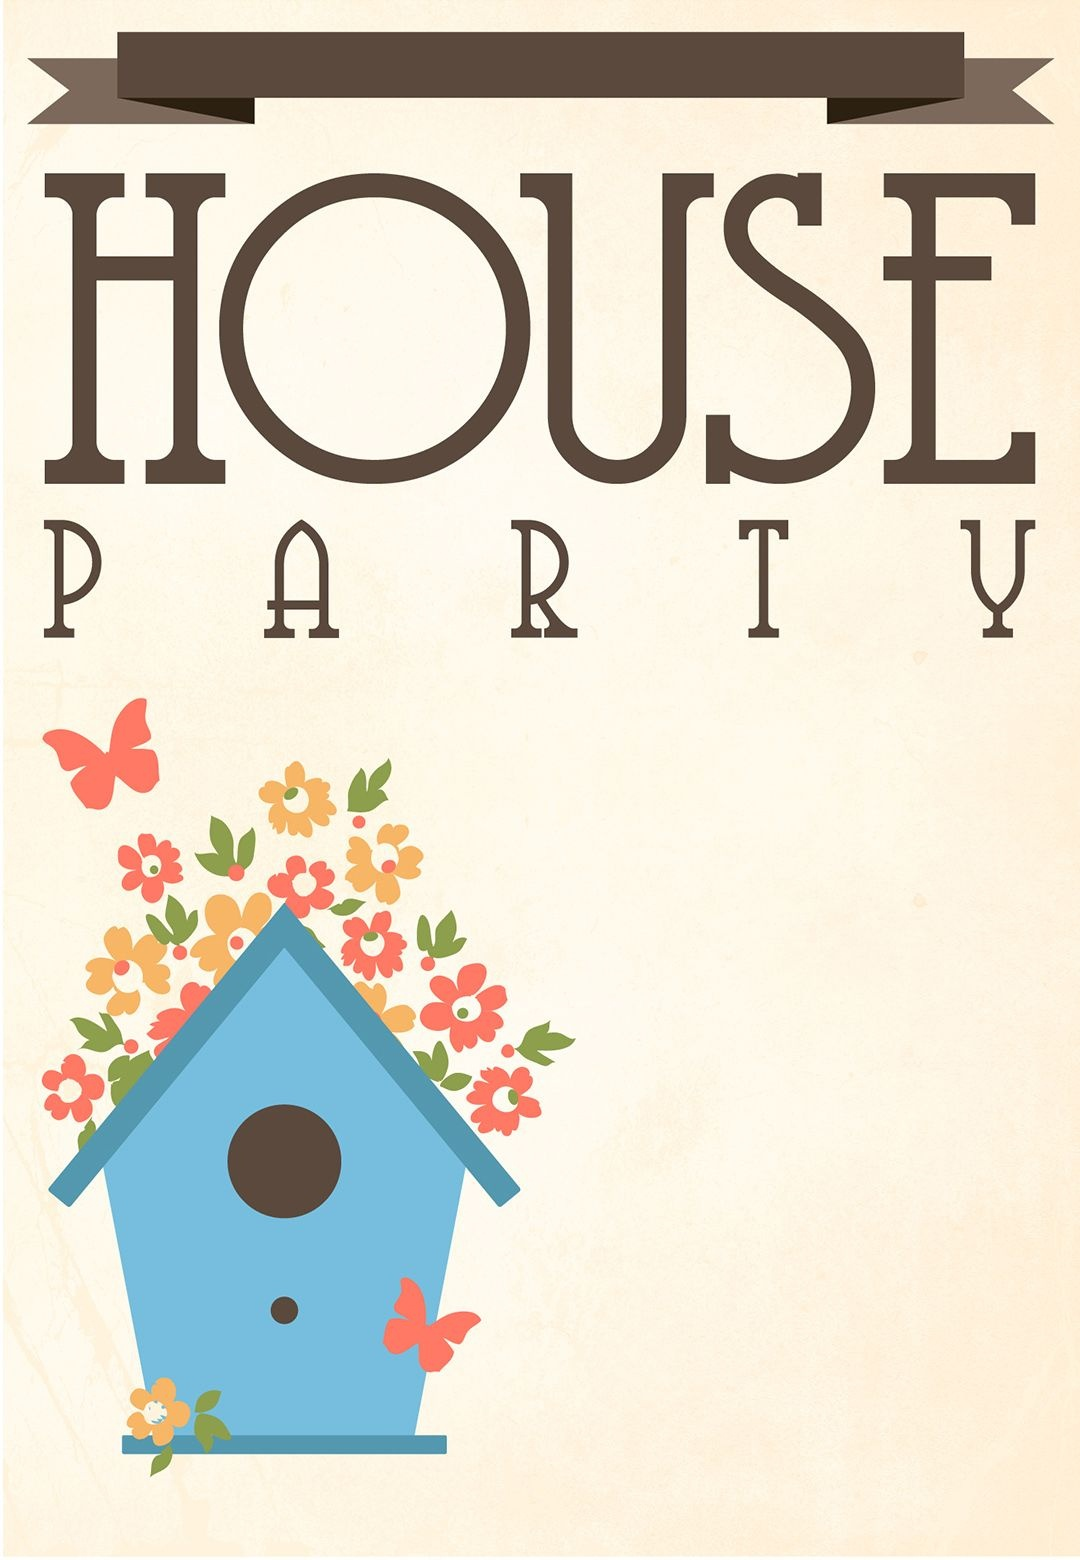 Free Printable House Party Invitation   Fonts/printables/templates - Free Printable Housewarming Invitations Cards